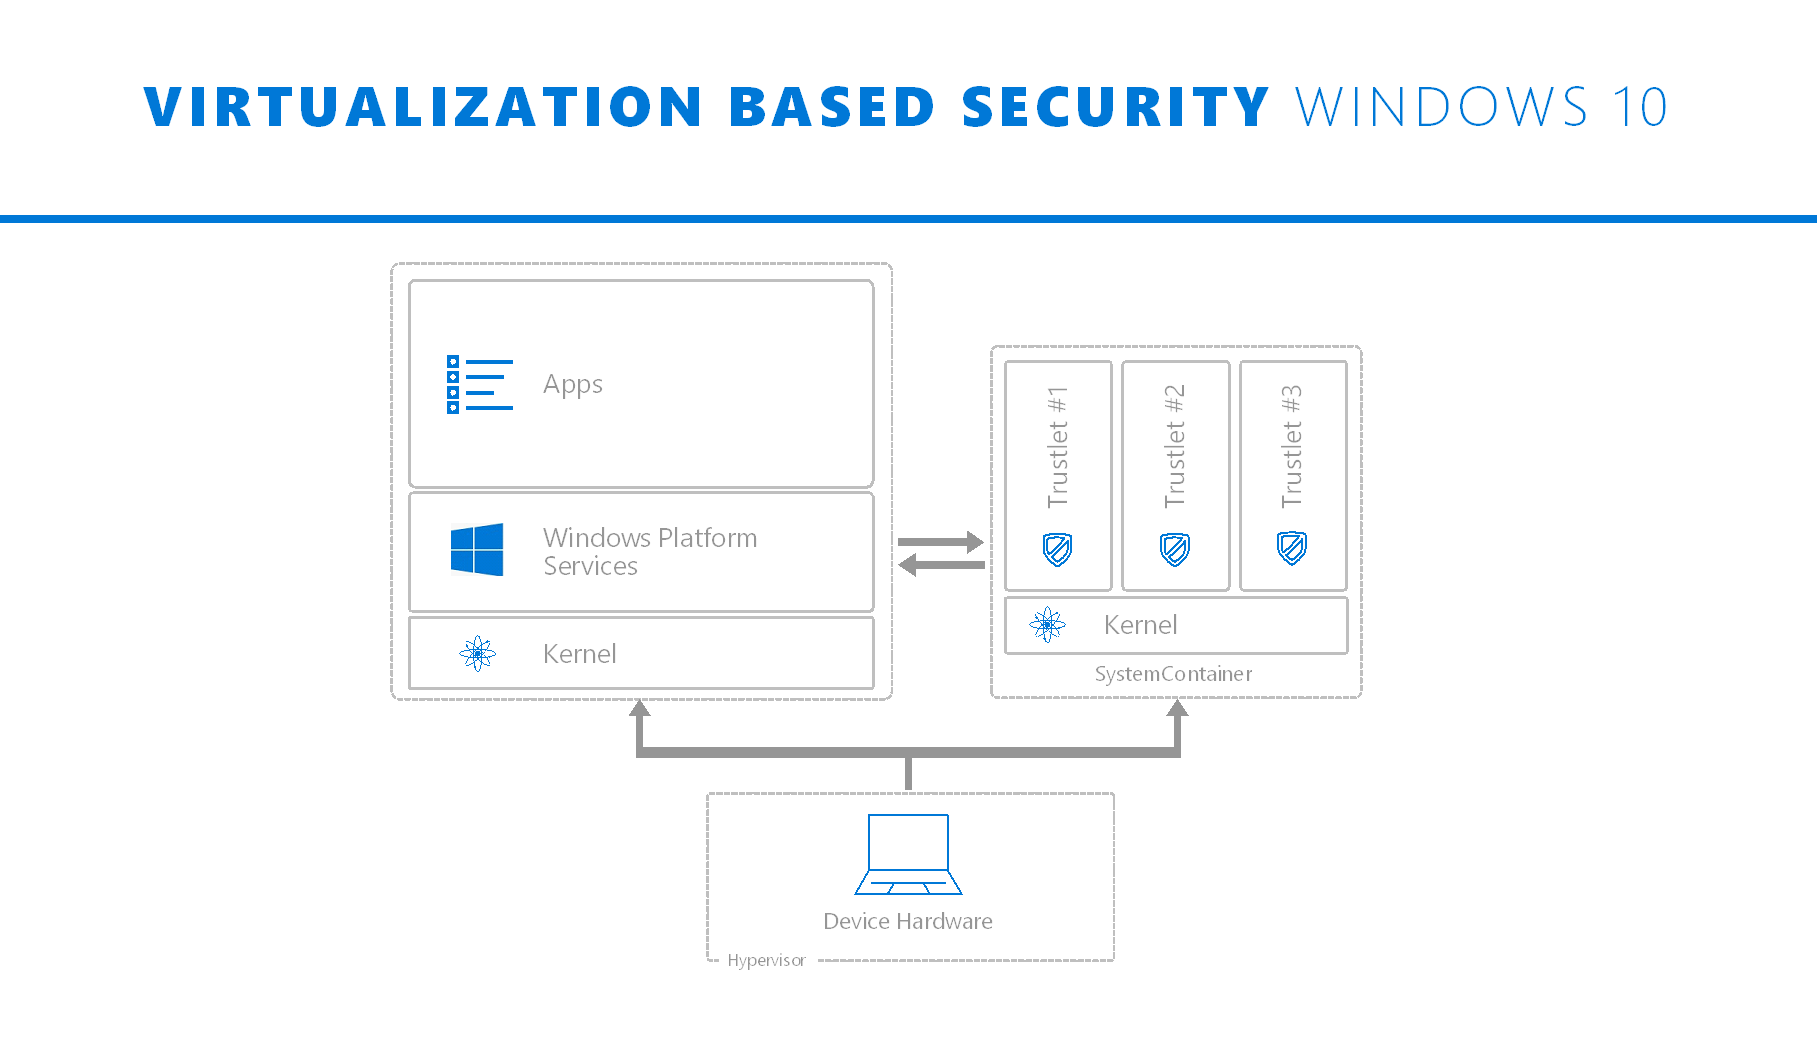 Secure Windows Kernel Diagram Not Lossing Wiring Block Linux Step Change In Security With Modern Devices And Architecture Rh Techcommunity Microsoft Com Os